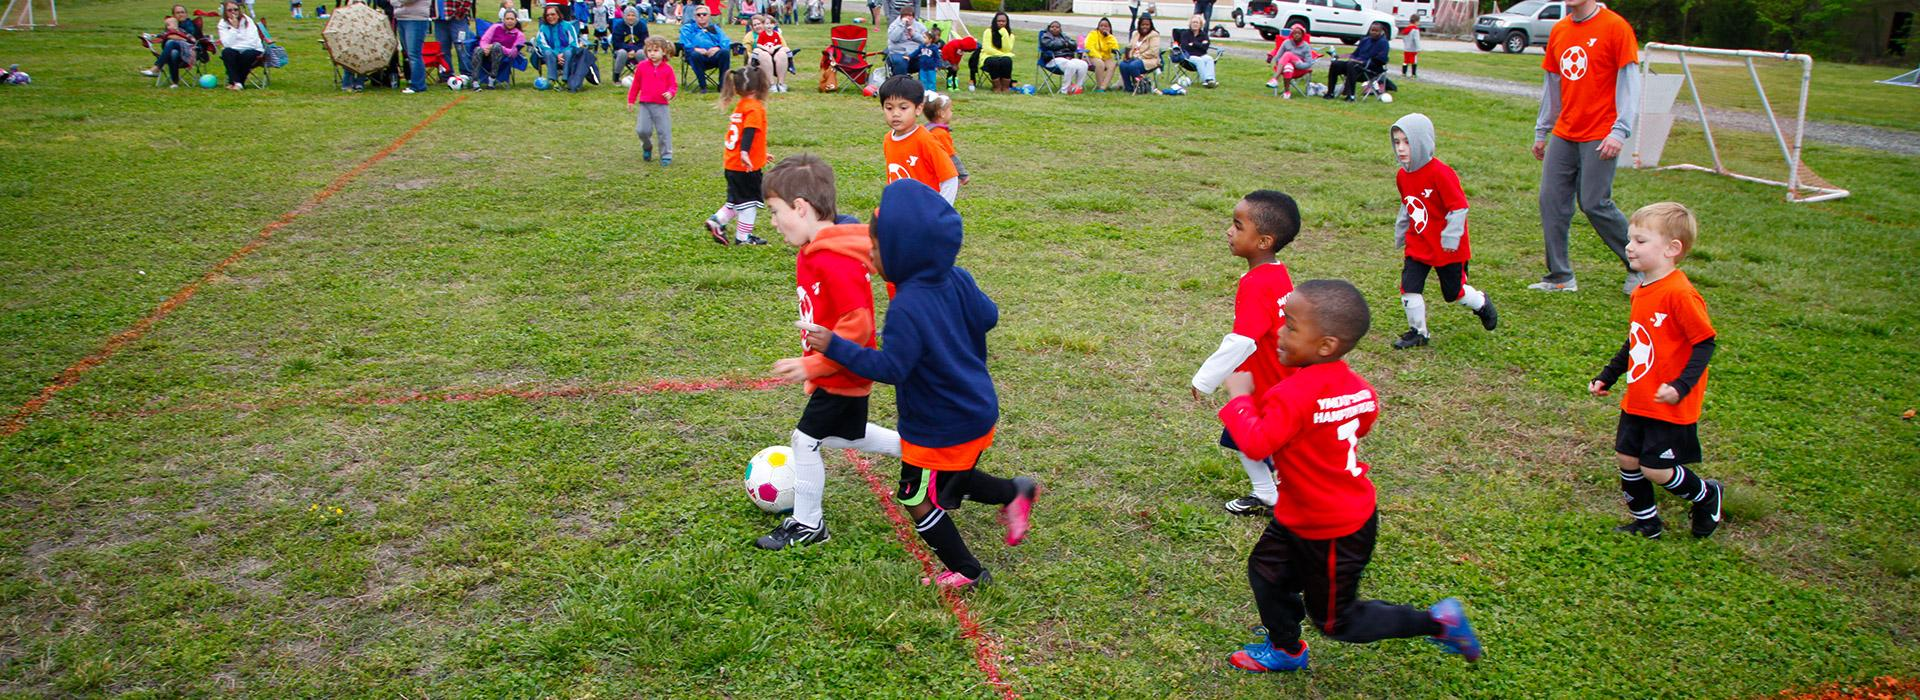 Greenbrier Family YMCA kids playing soccer